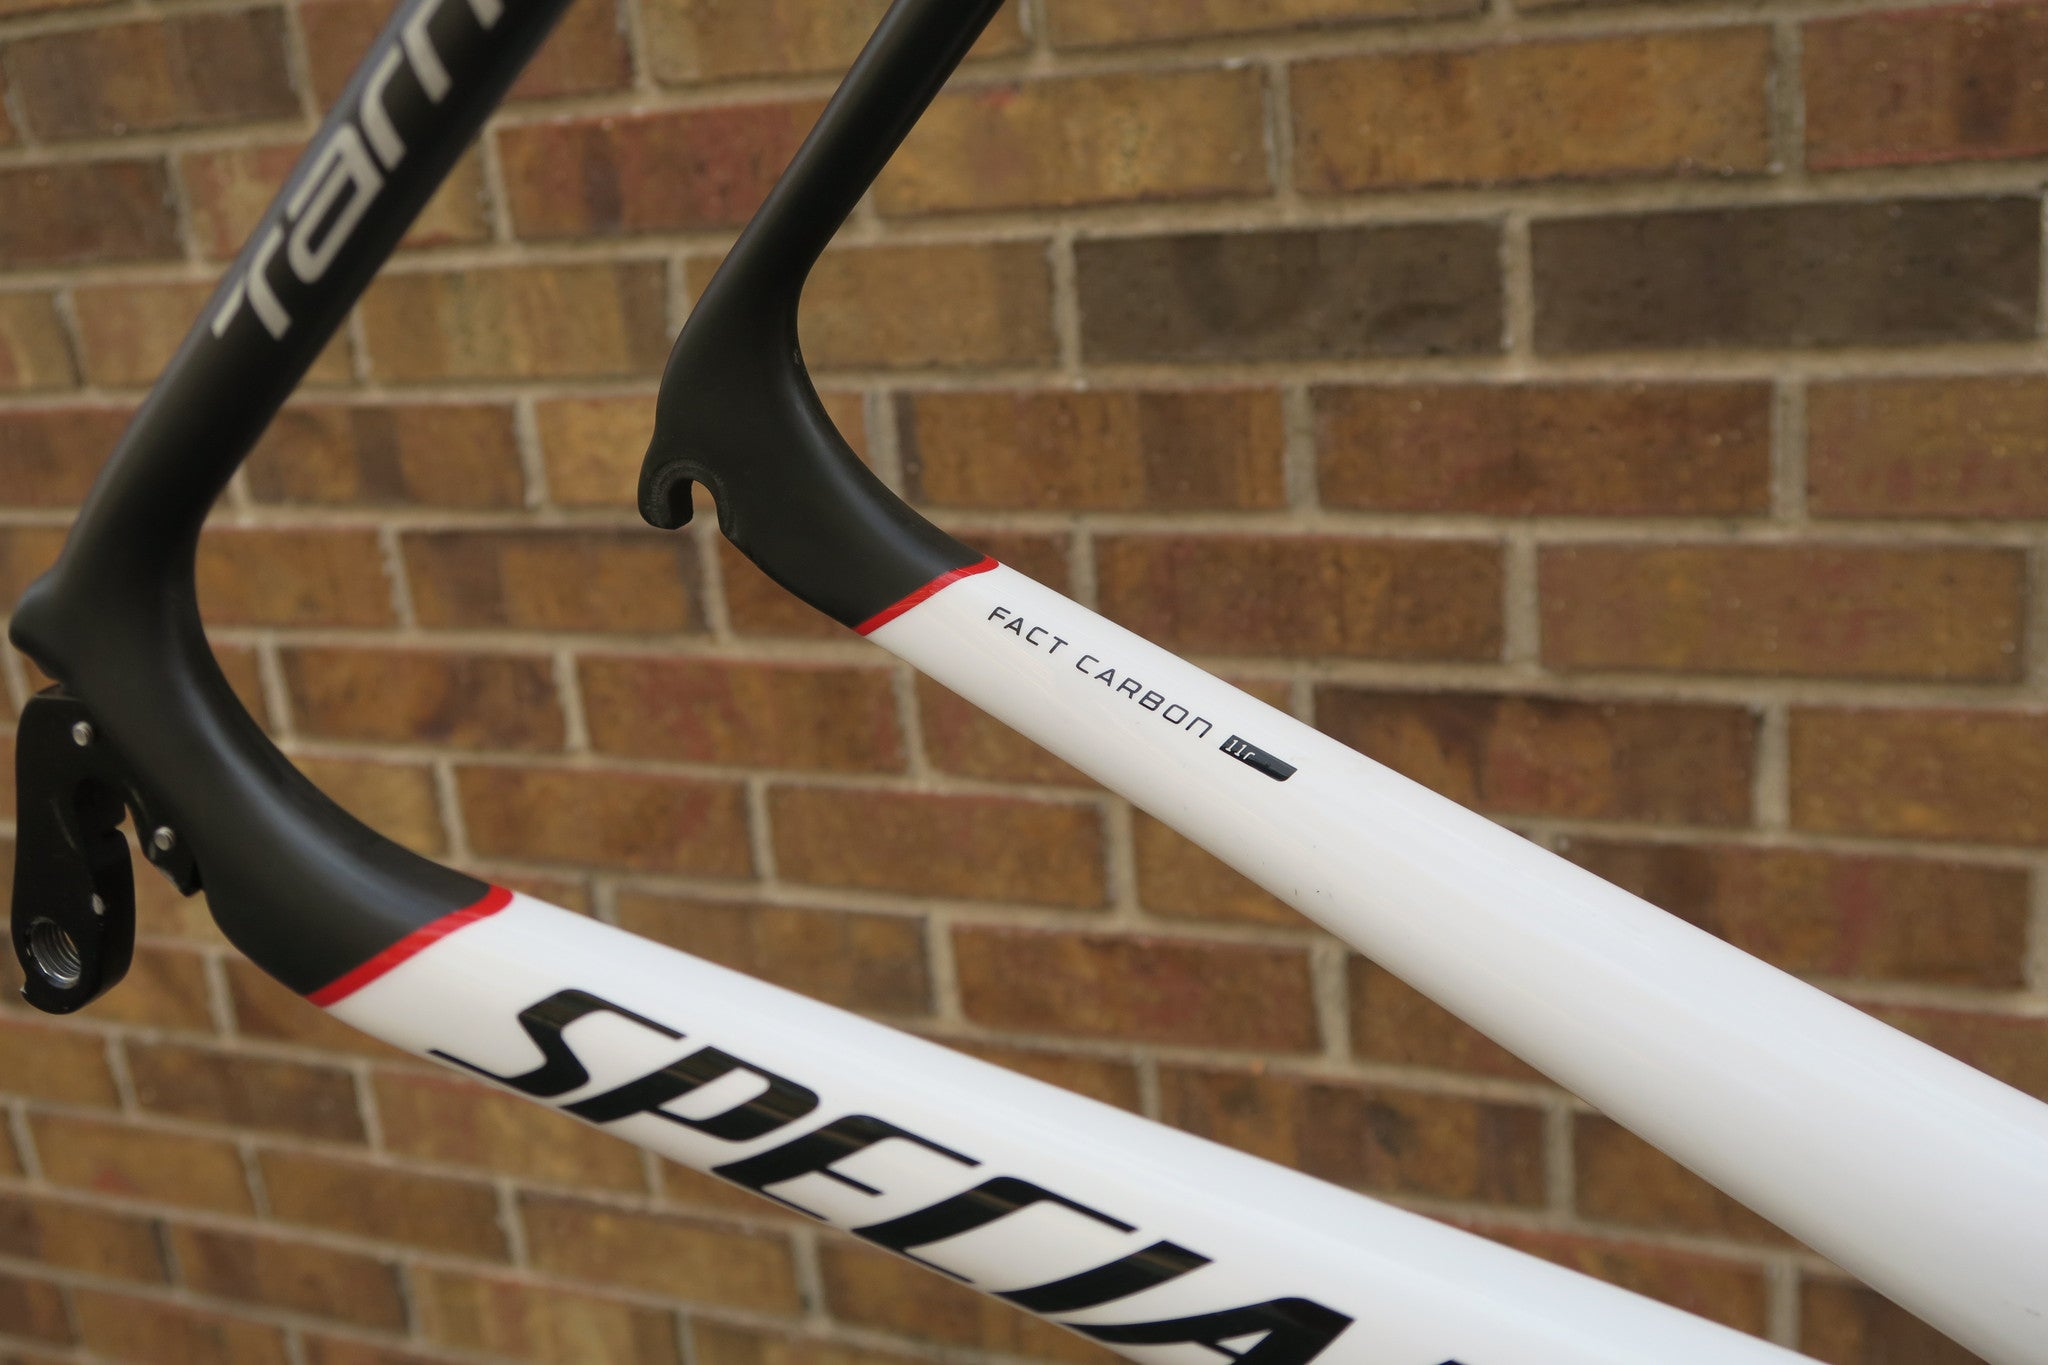 2014 S-WORKS TARMAC CARBON FRAME